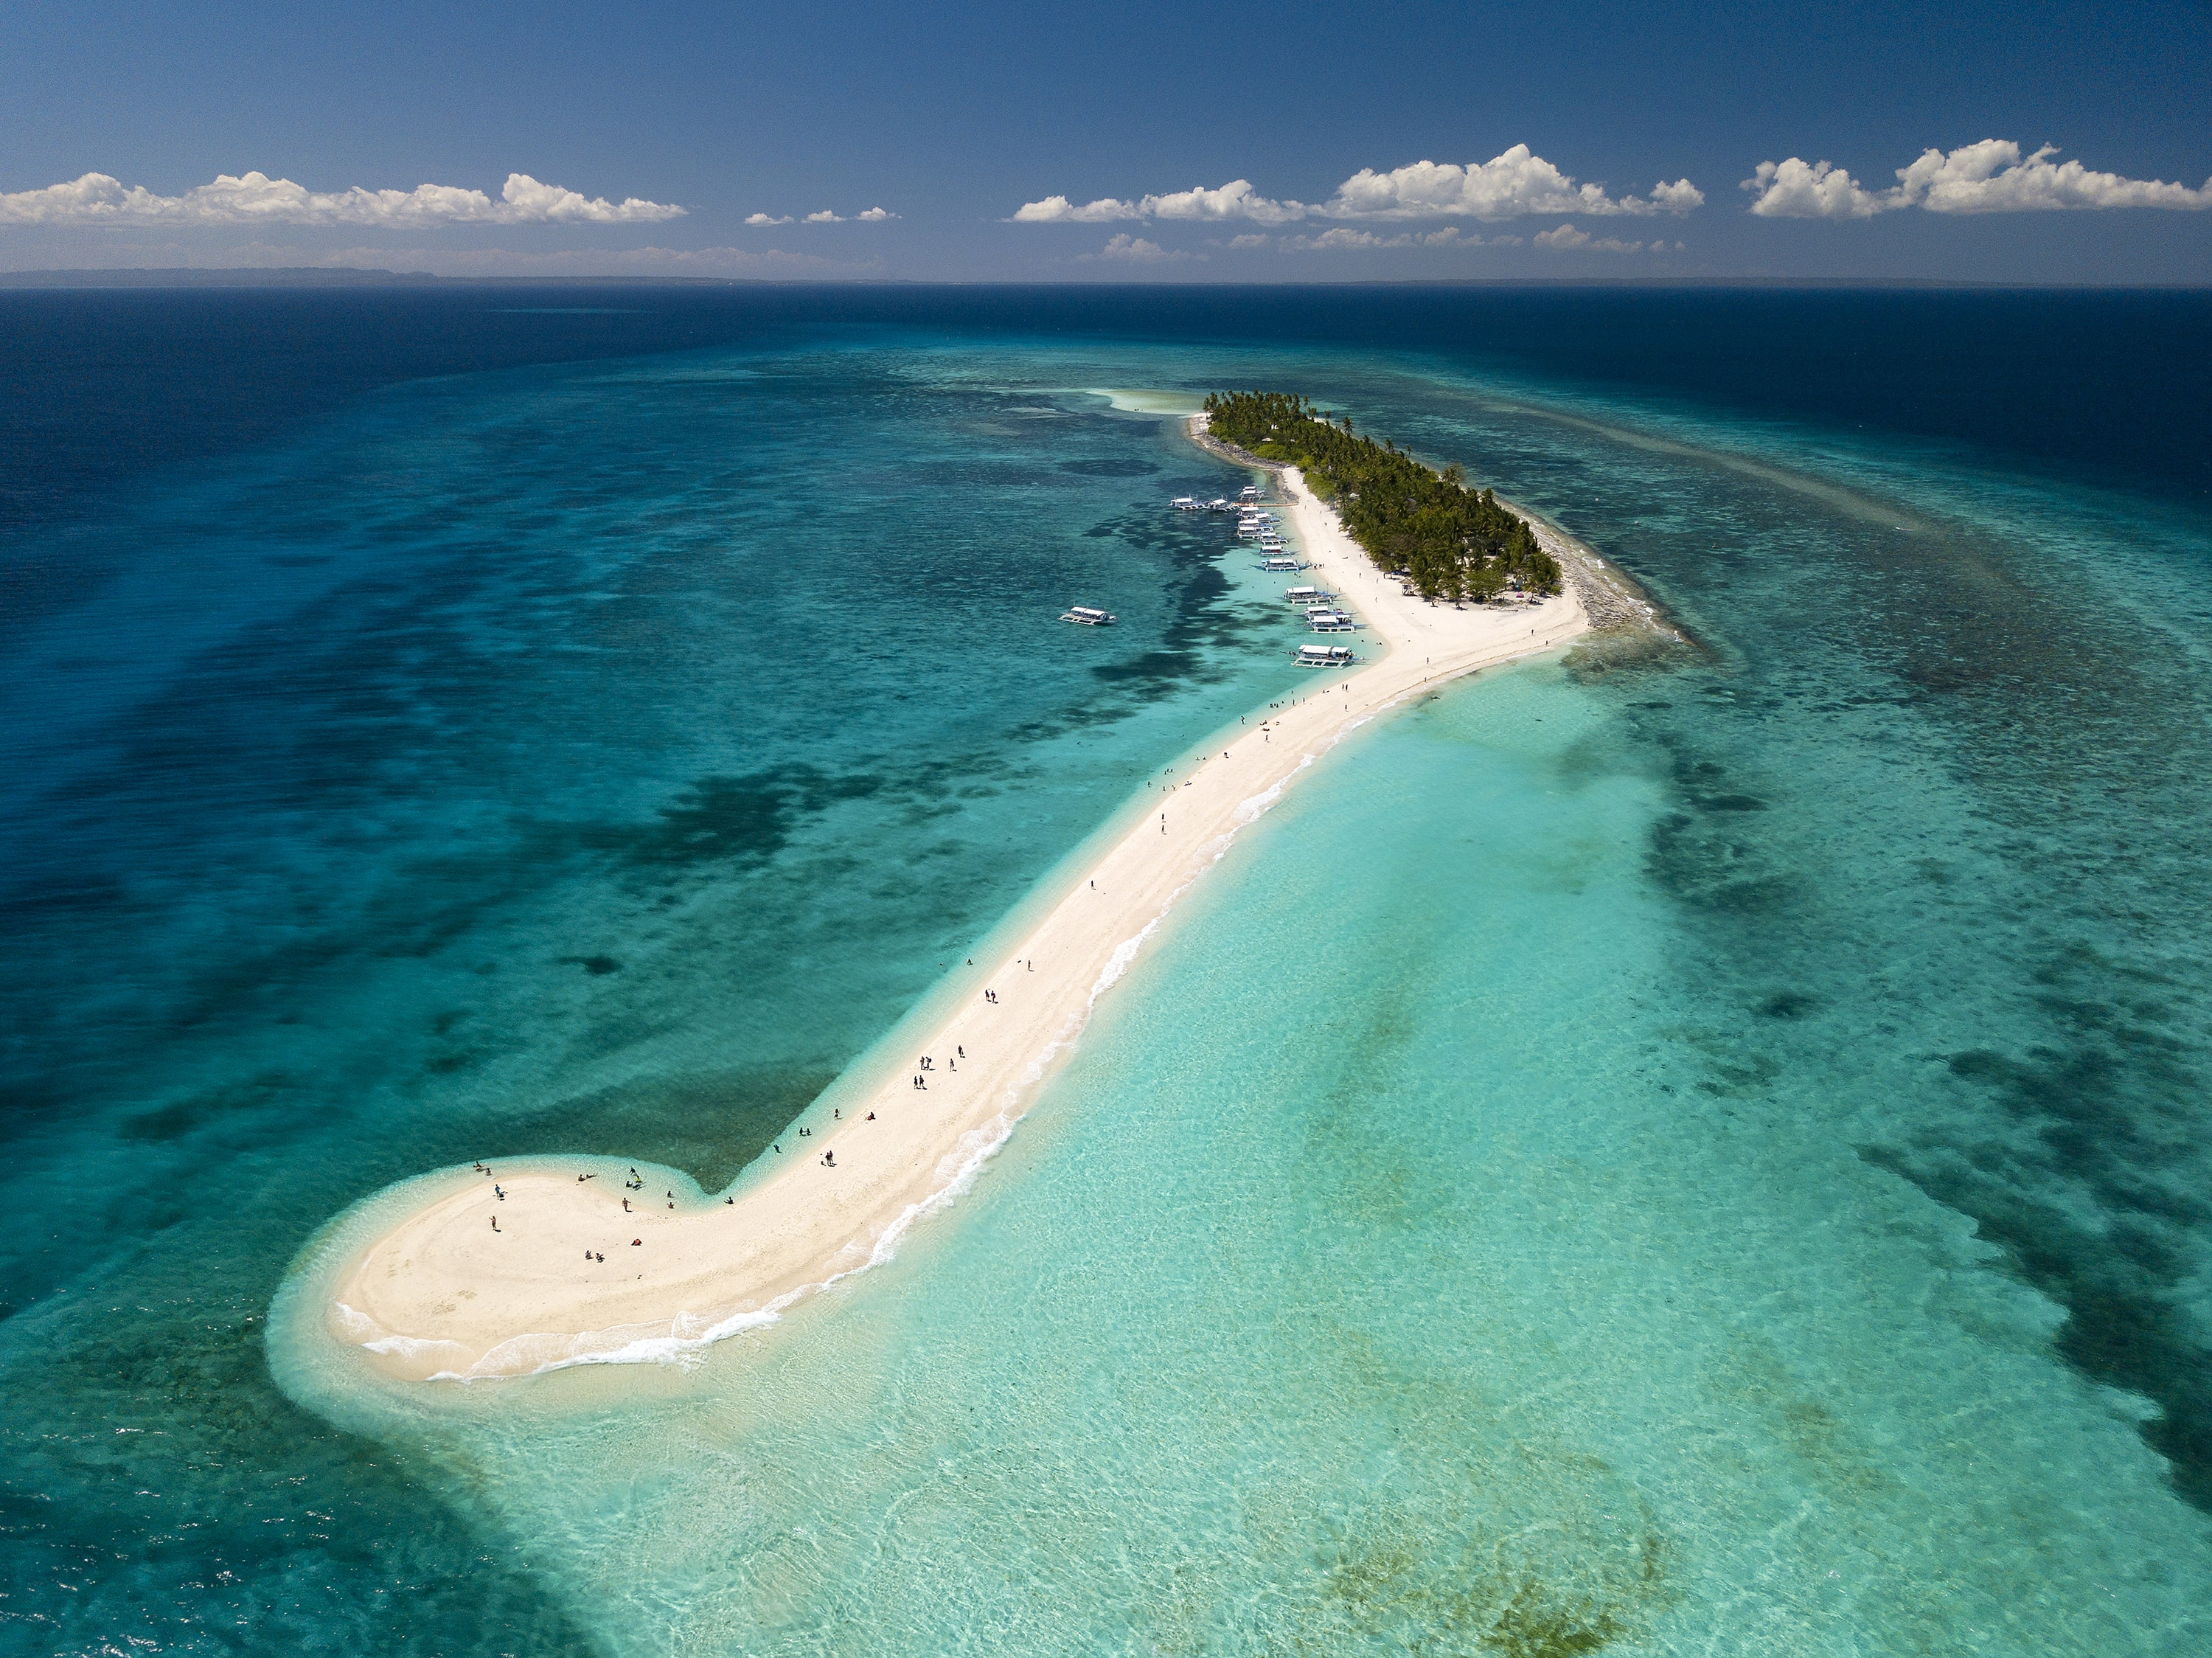 Leyte Kalanggaman Island Day Tour with Lunch & Transfers from Cebu City or Mactan